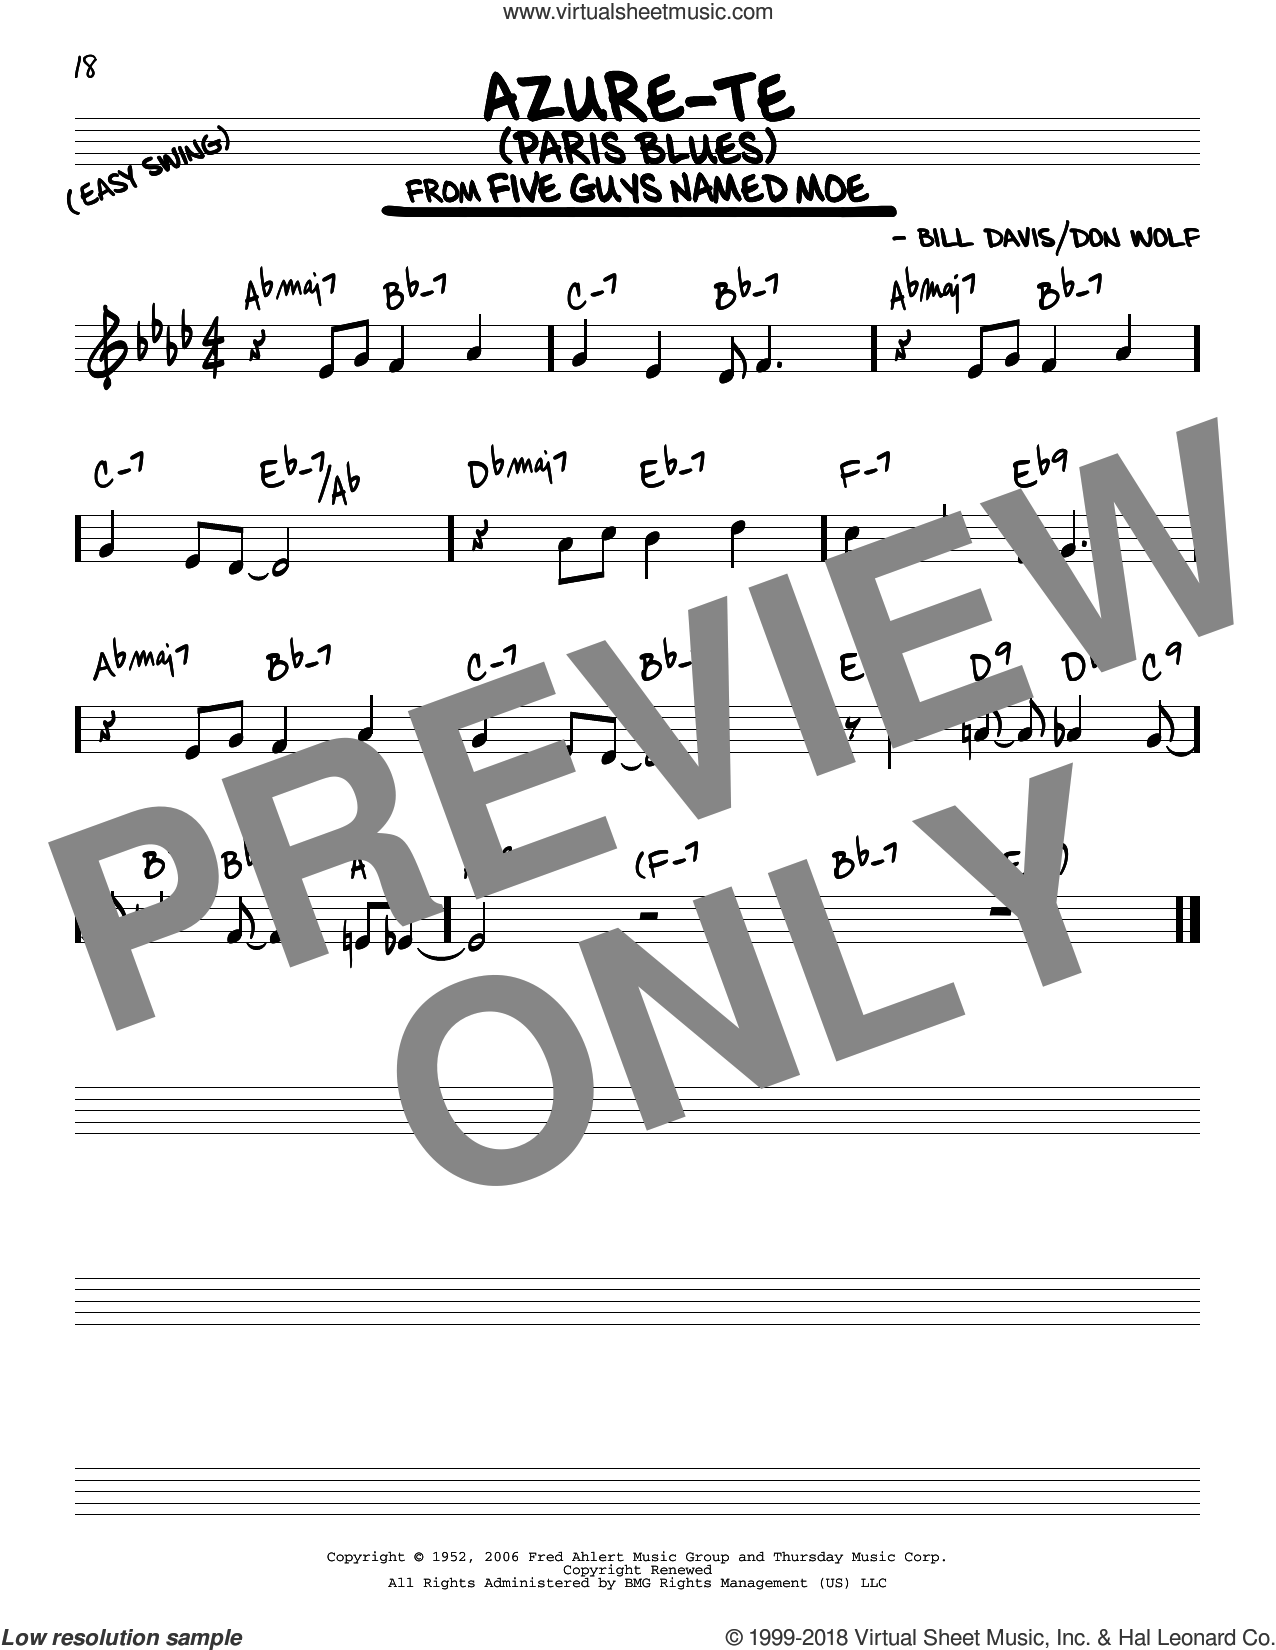 Azure-Te (Paris Blues) sheet music for voice and other instruments (real book) by Don Wolf and Bill Davis, intermediate skill level